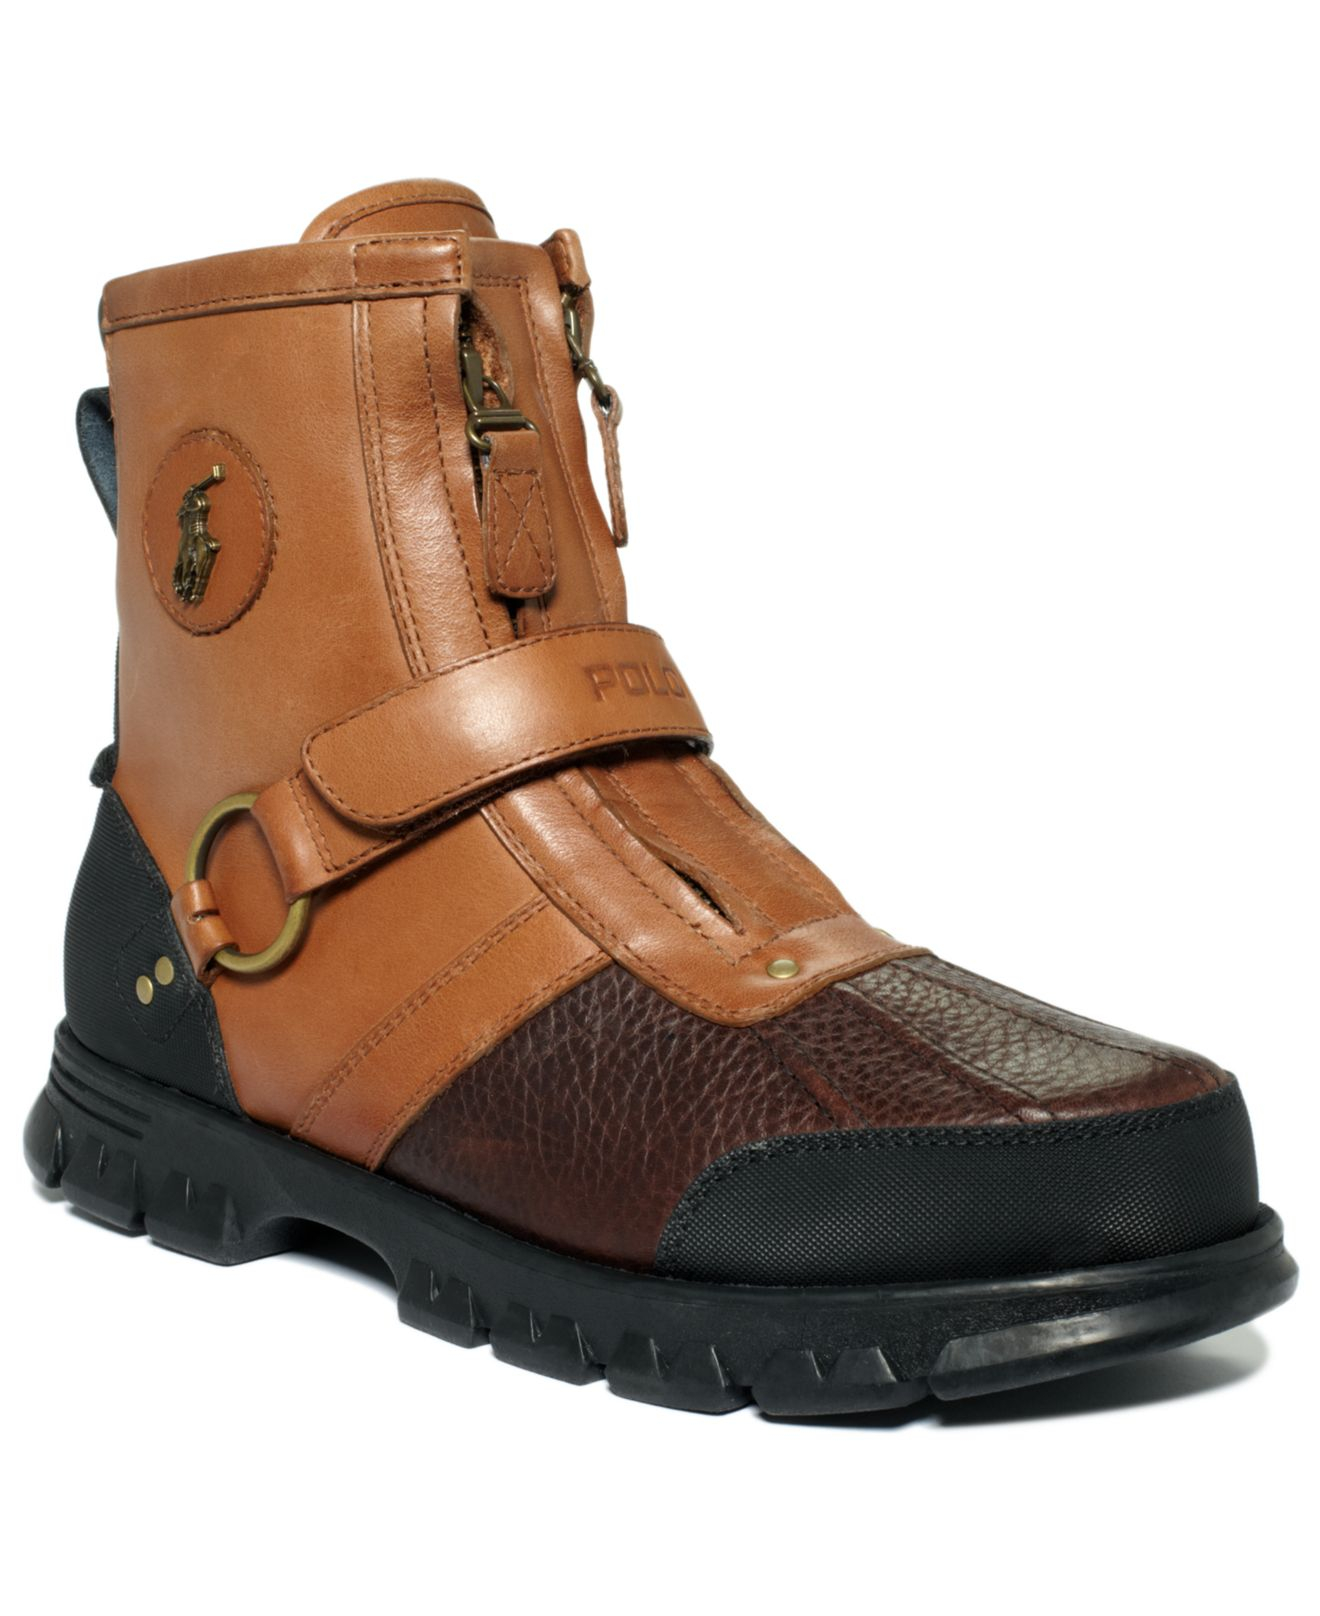 polo ralph lauren conquest iii high duck boots in brown for men briarwood brown lyst. Black Bedroom Furniture Sets. Home Design Ideas